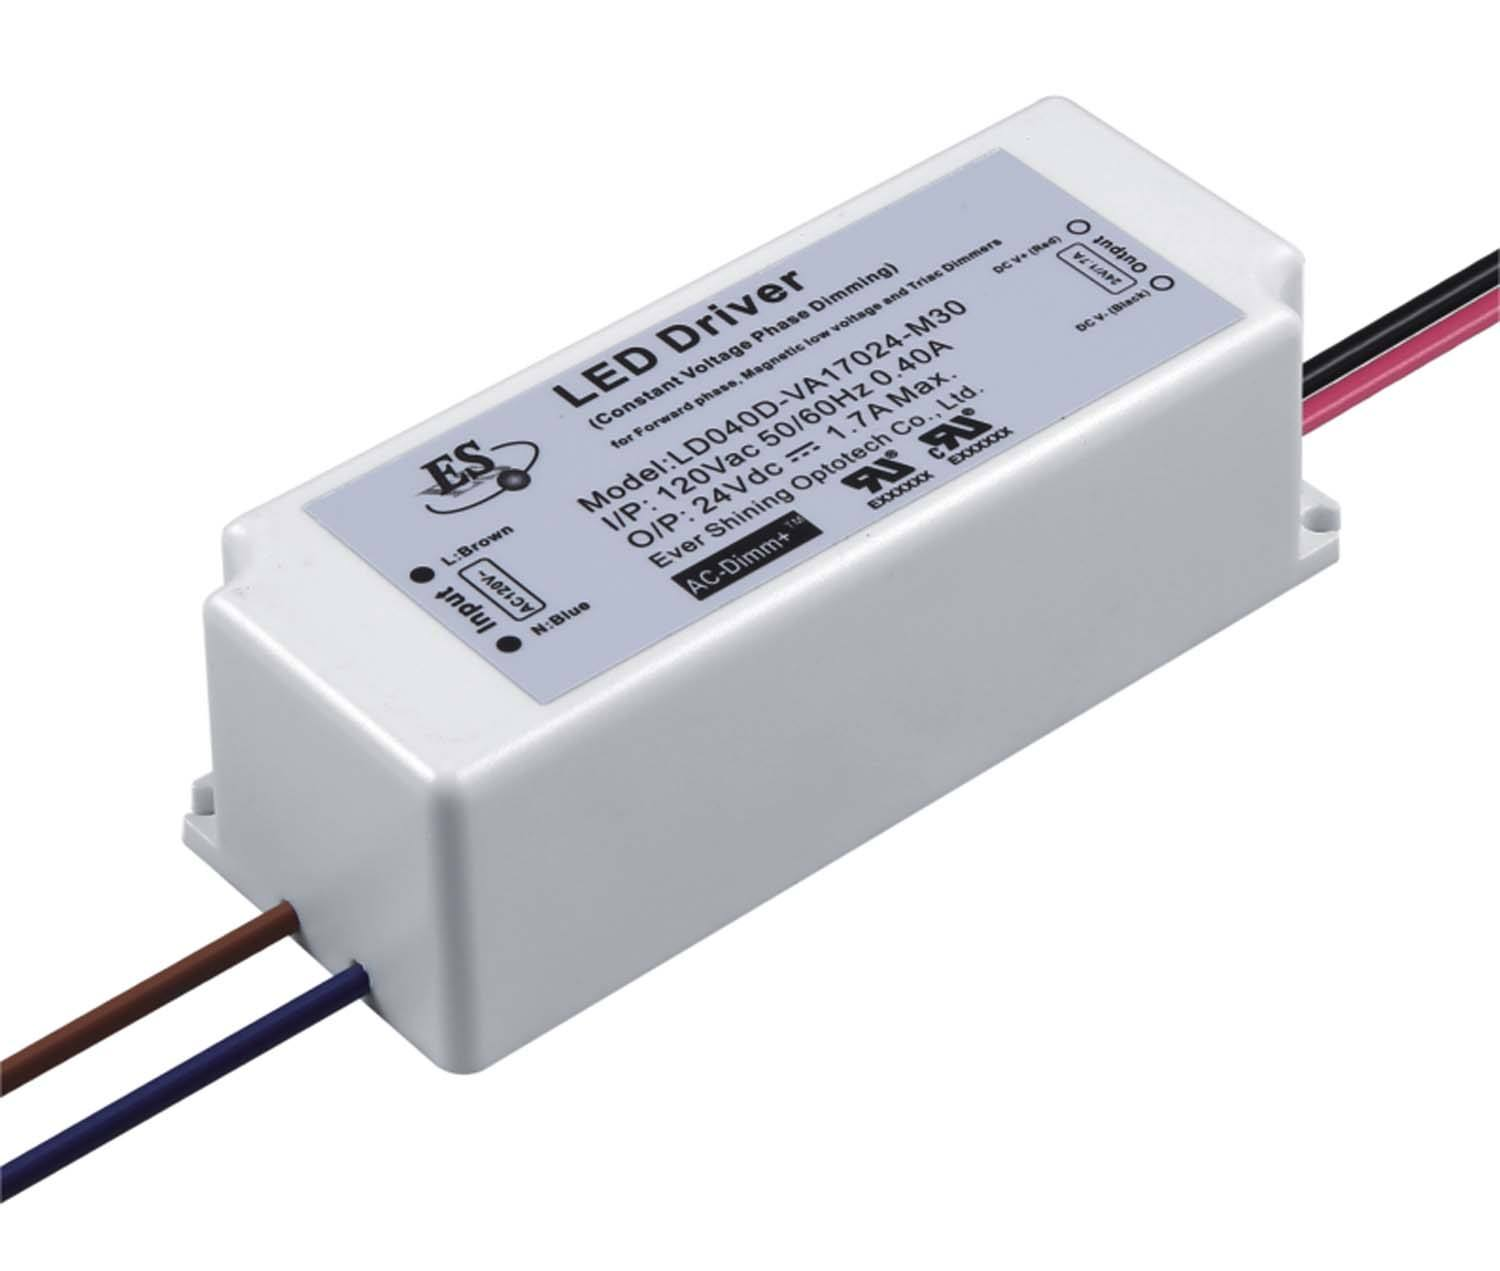 Es 230vac Dc 83% Rendement Waterdichte Ip65 Constante Spanning Triac <span class=keywords><strong>Dimbare</strong></span> 24V 40W Led Driver